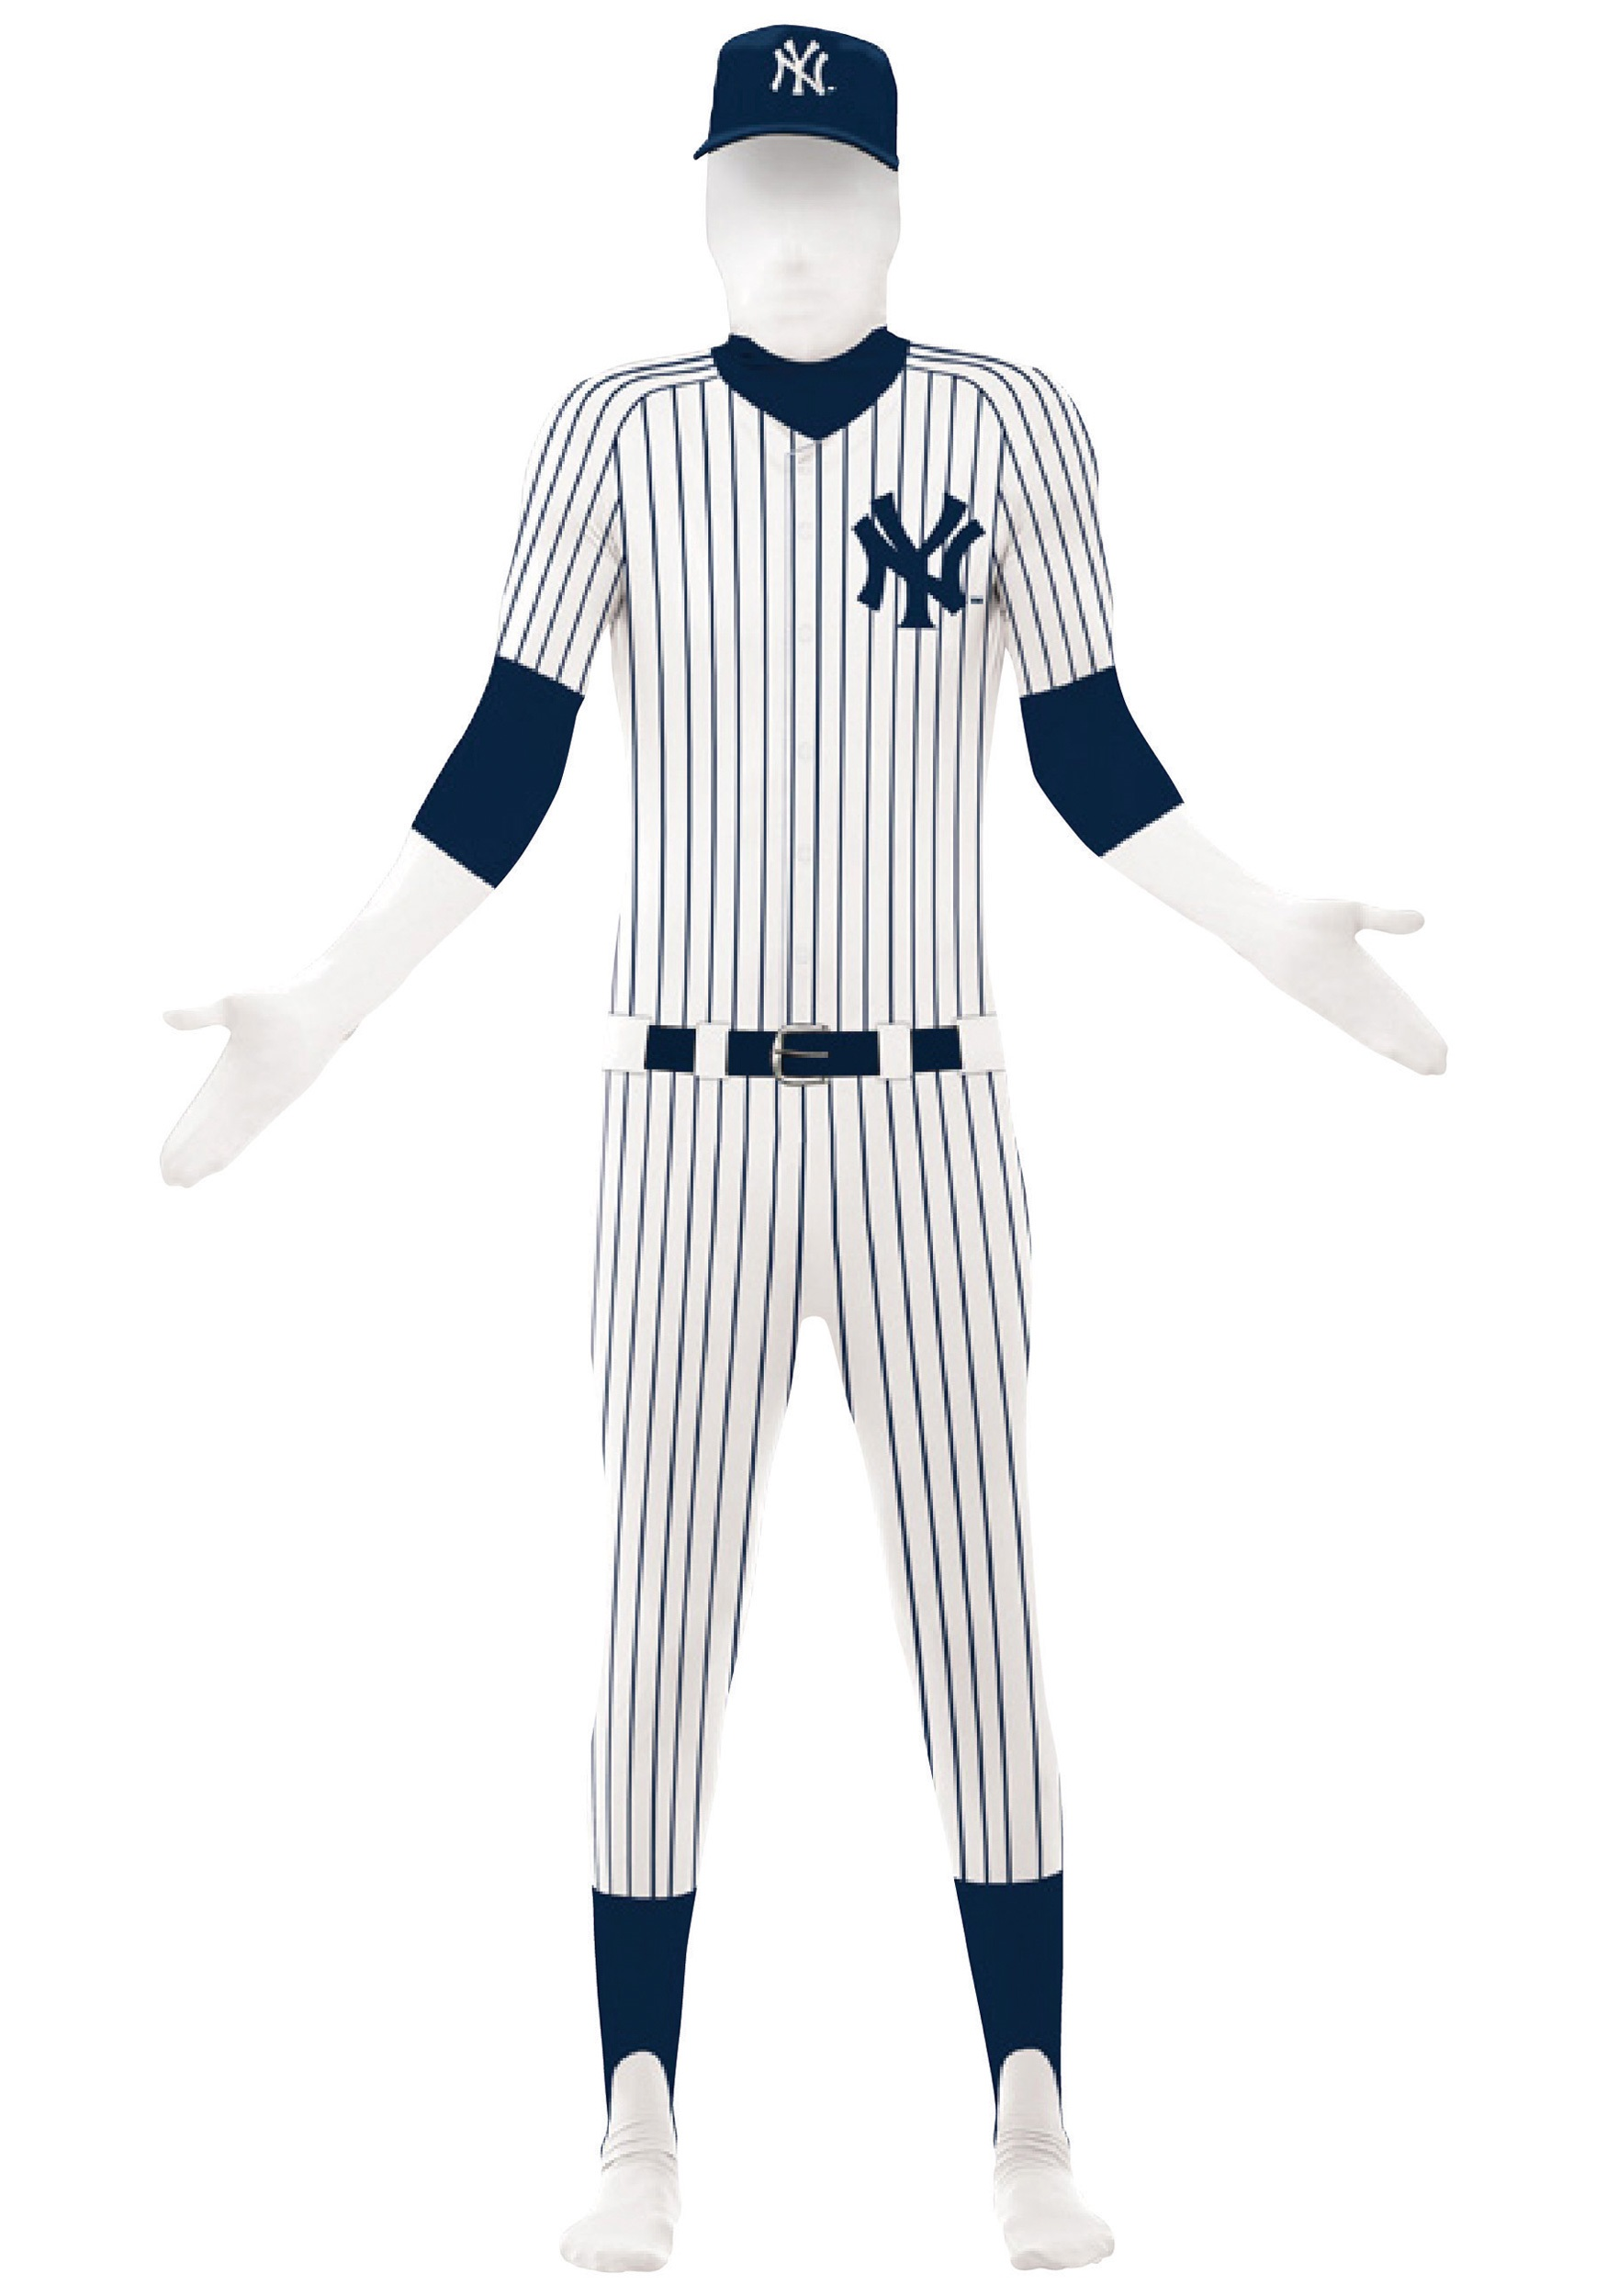 Mens New York Yankees Costume - Halloween Costume Ideas 2018 7d1f5af9745